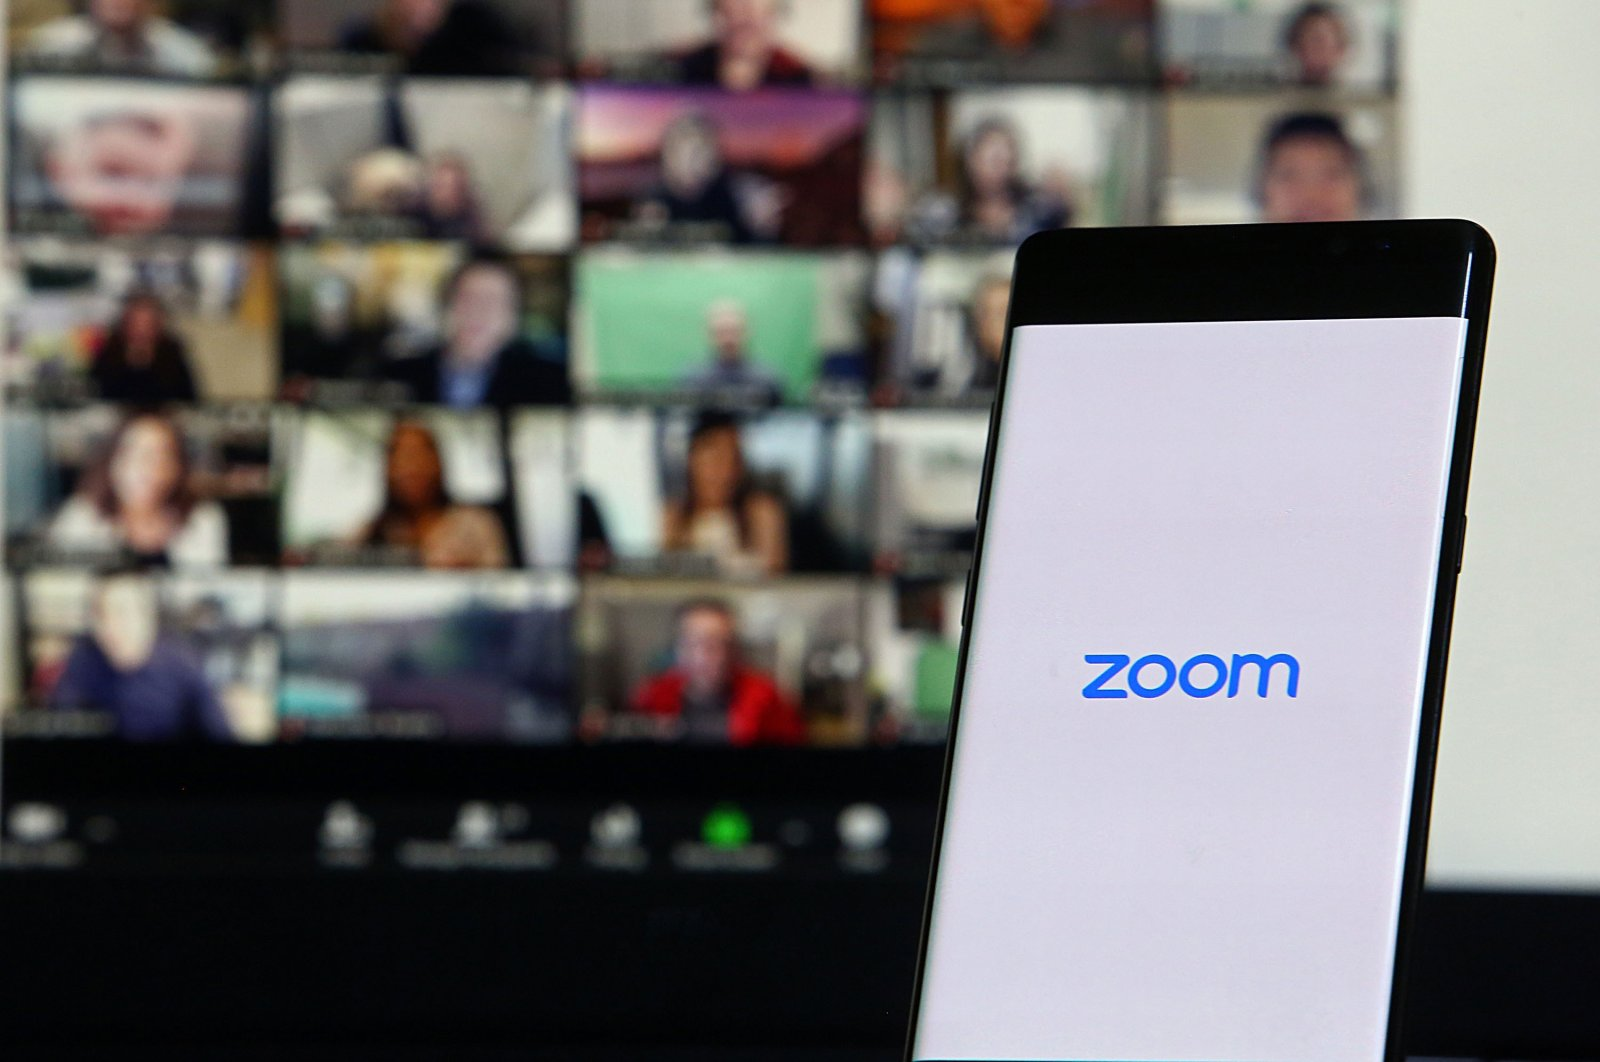 A smartphone showing Zoom Cloud Meetings app in Istanbul, Turkey, April 6, 2021. (Shutterstock Photo)